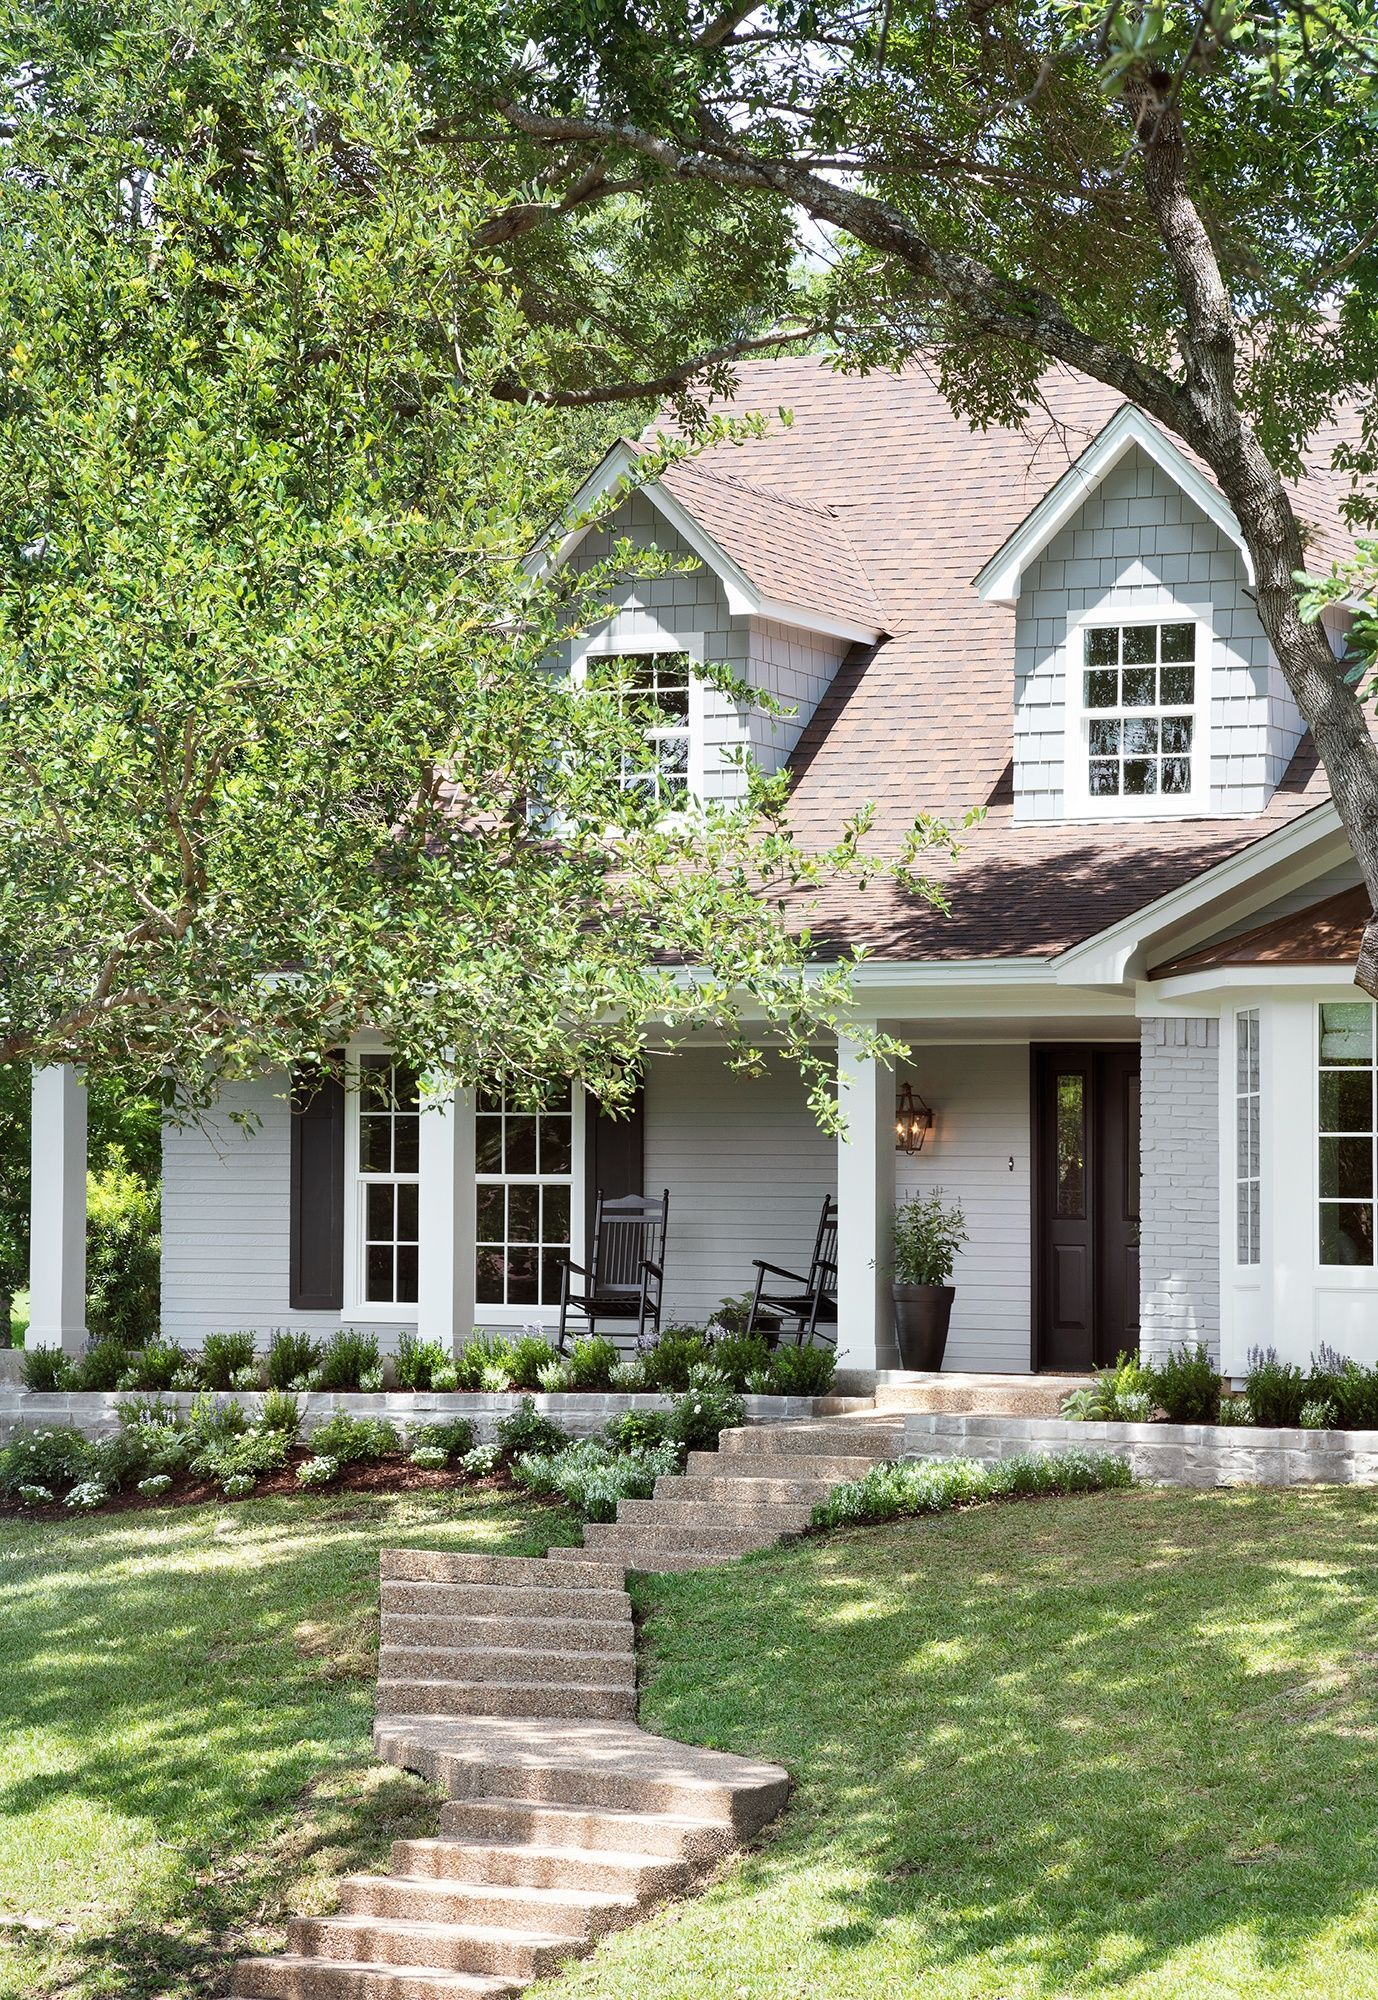 Bay window design exterior  we installed a copper roof and trimmed out the bay window to add a